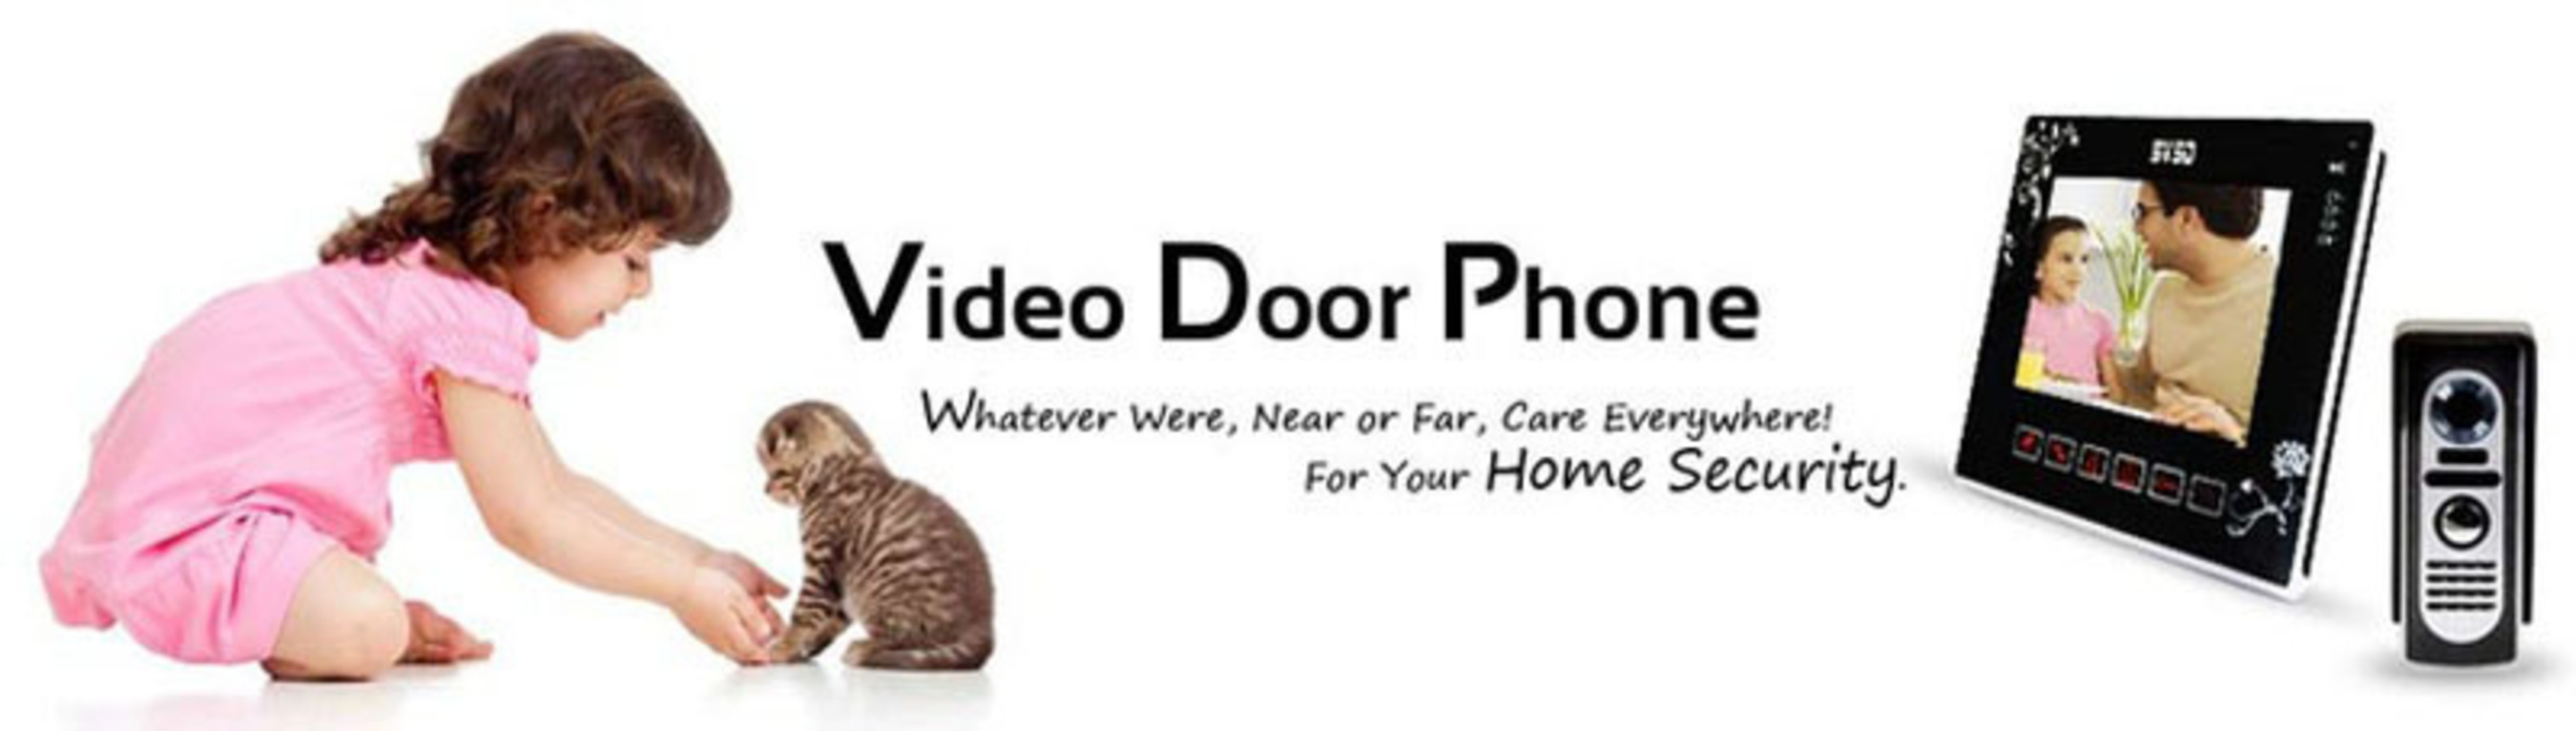 Whatever Where, Near or Far, Care Everywhere! For Your Home Security!(PRNewsFoto/ineSun)